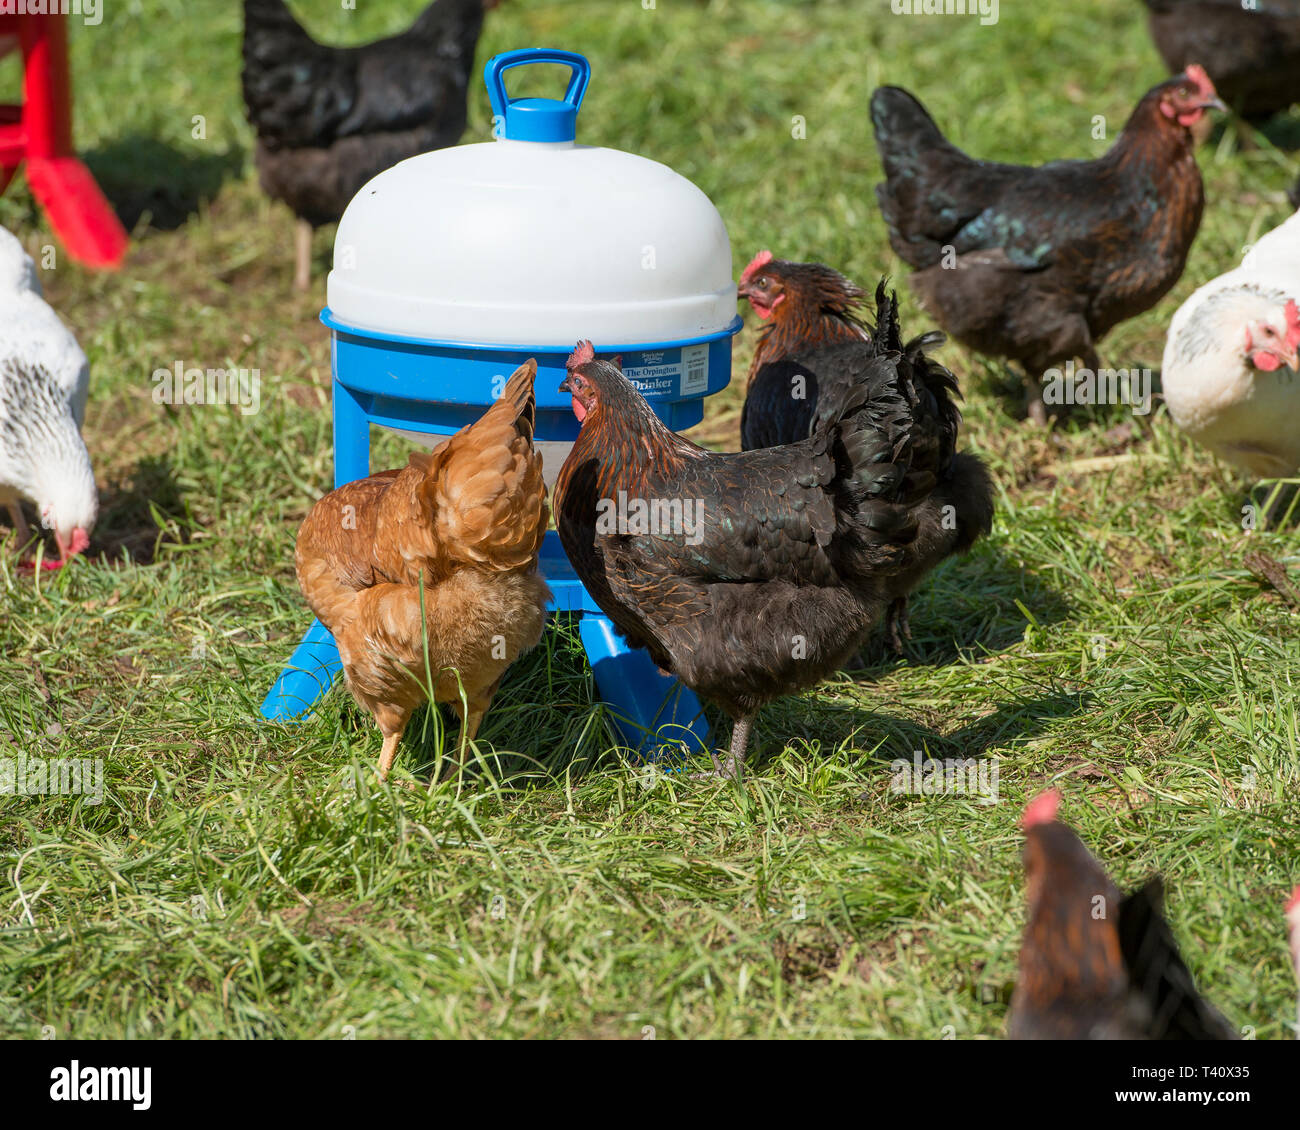 chickens free range with water drinker - Stock Image